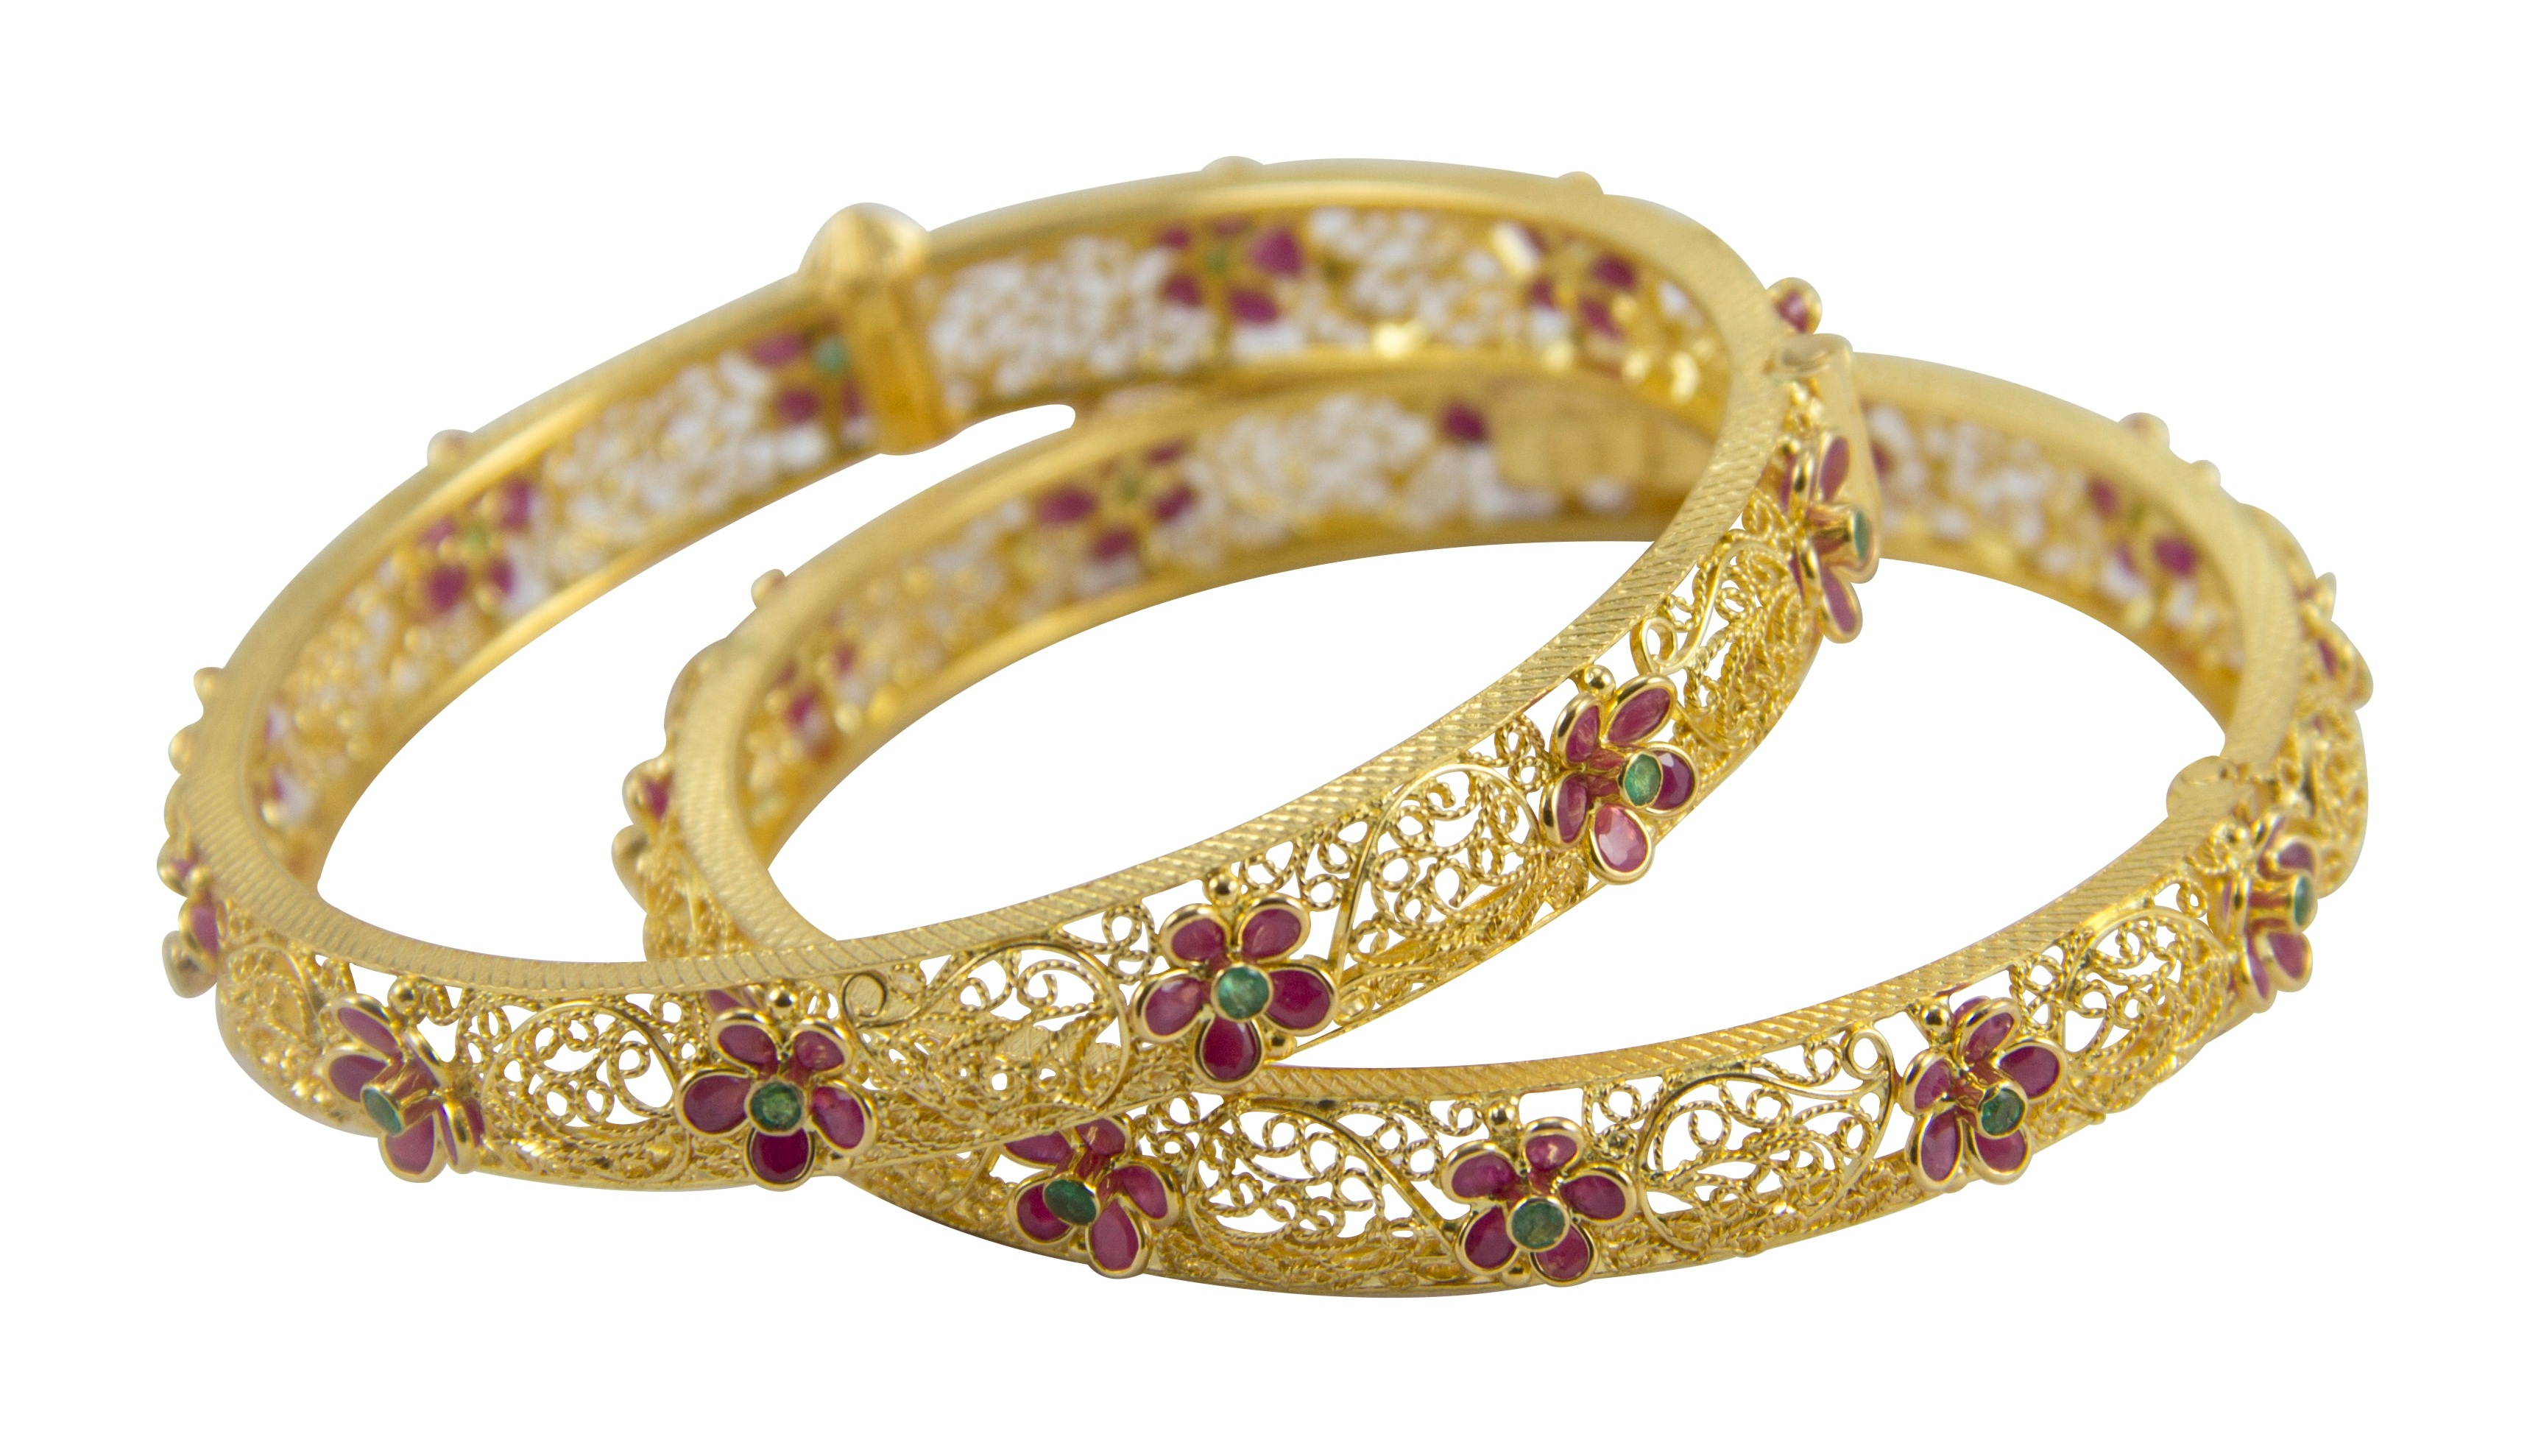 RUBY EMERALD BANGLE